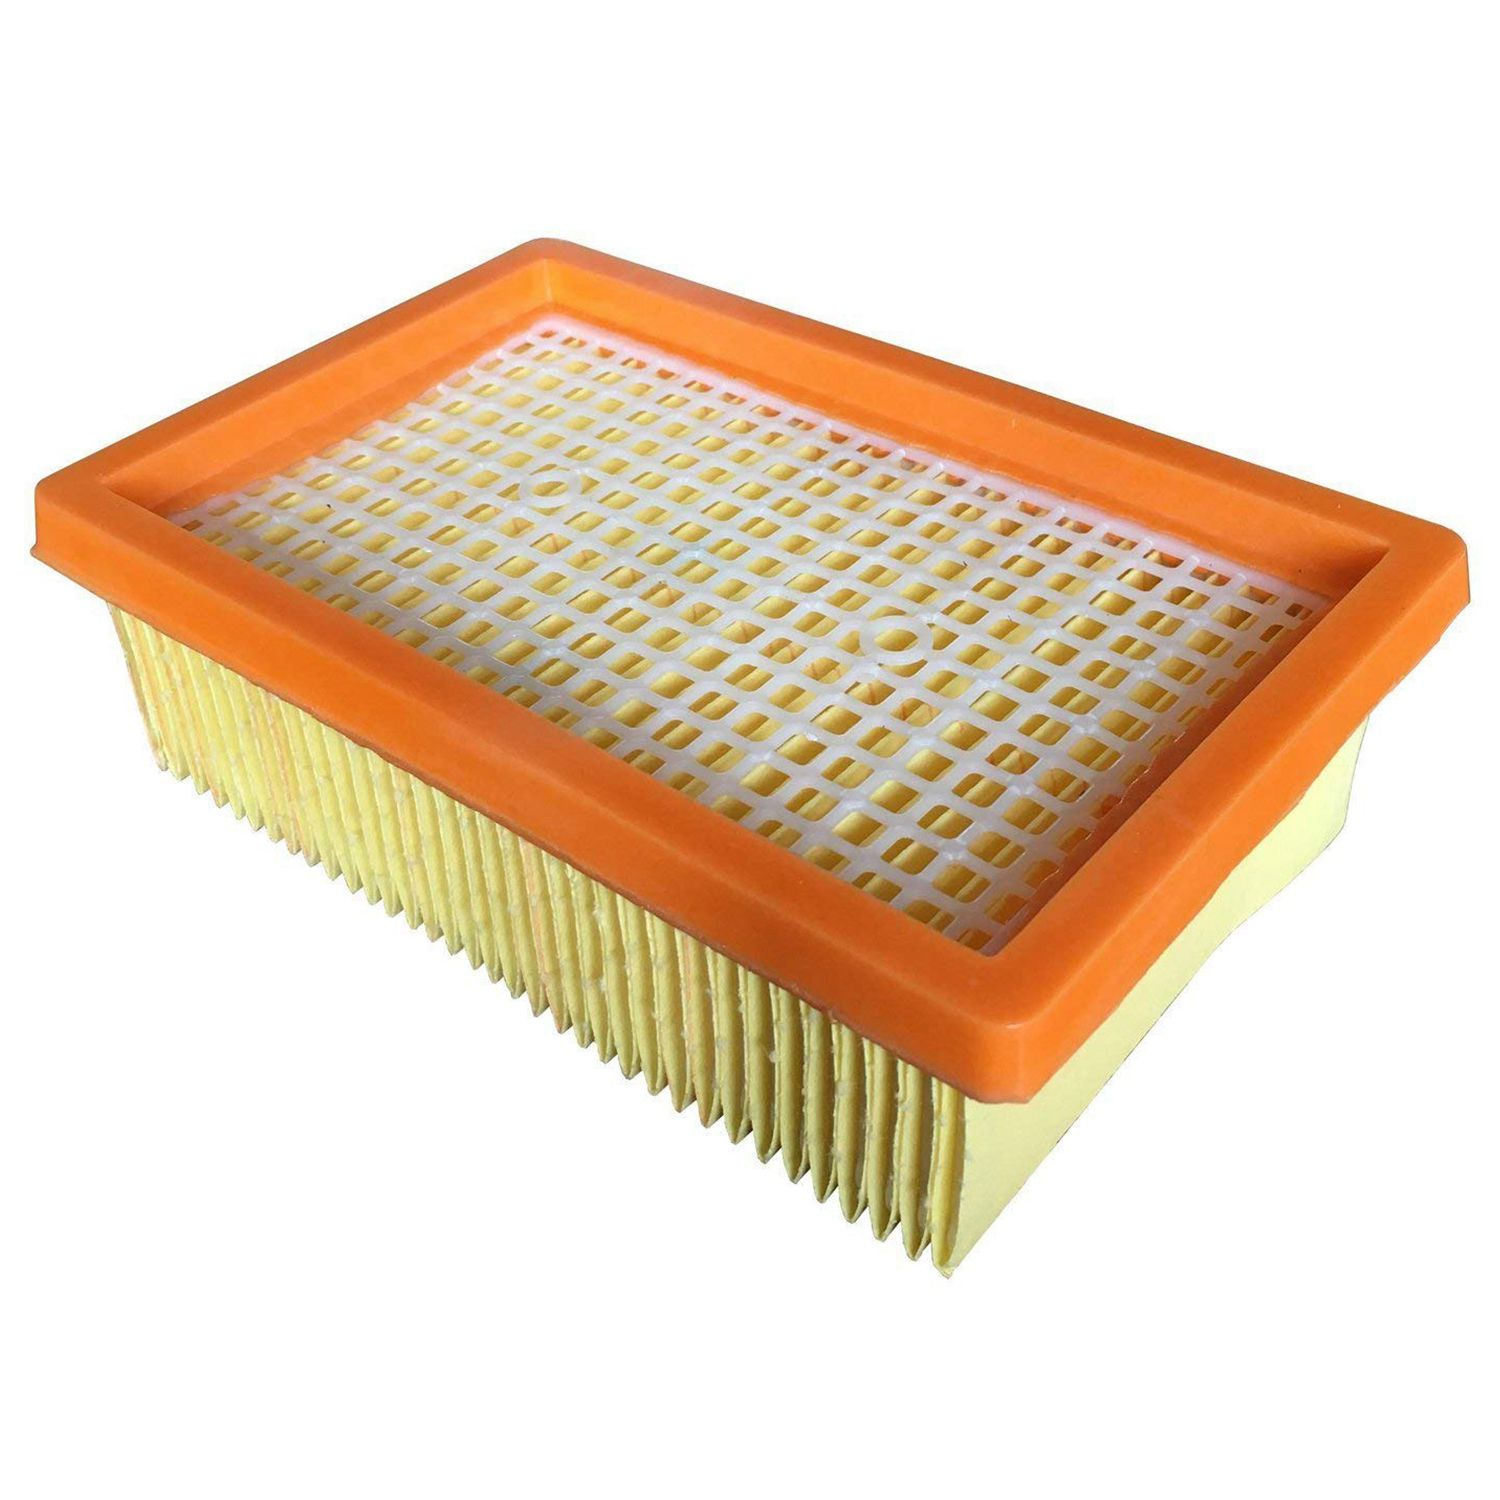 Vacuum Cleaner Filter Replacement For KARCHER Flat-Pleated MV4 MV5 MV6 WD4 WD5 WD6 P PREMIUM WD5